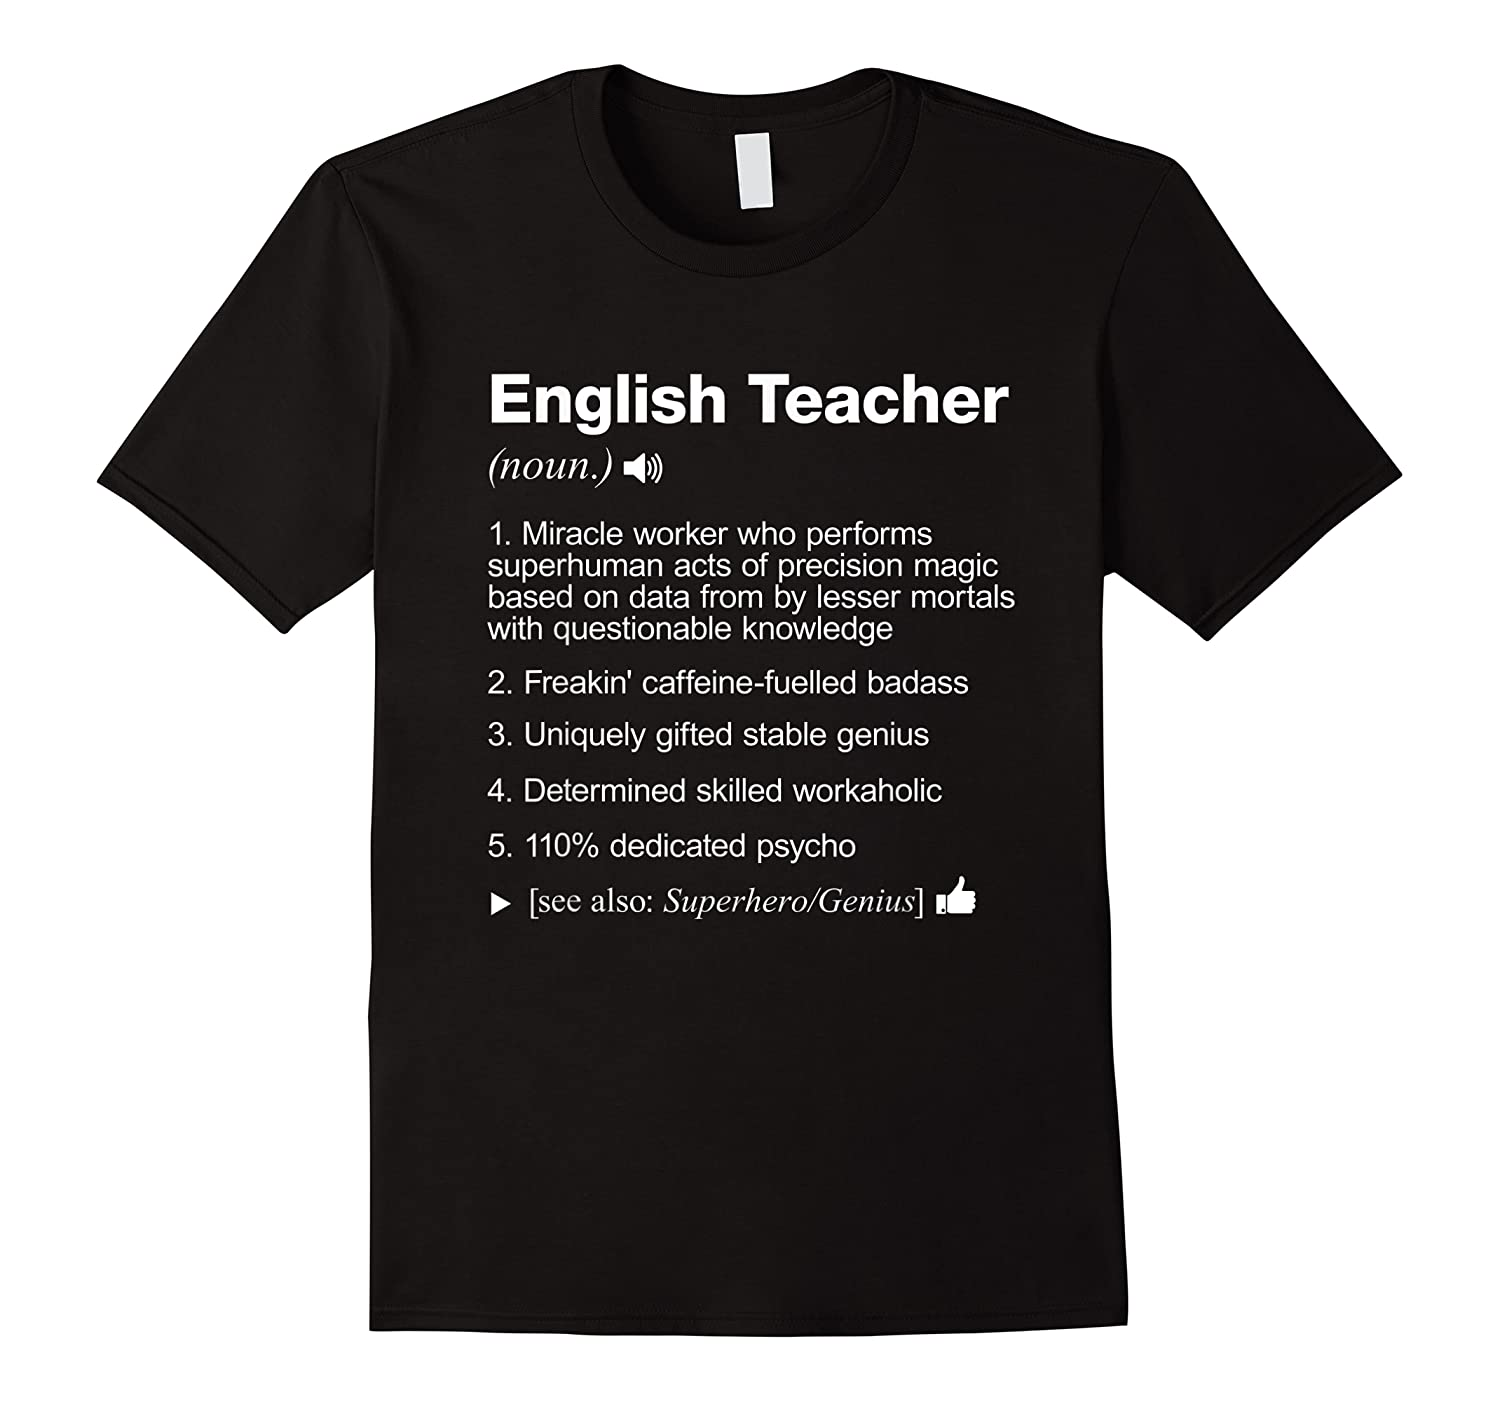 English Tea Definition Meaning Funny T-shirt